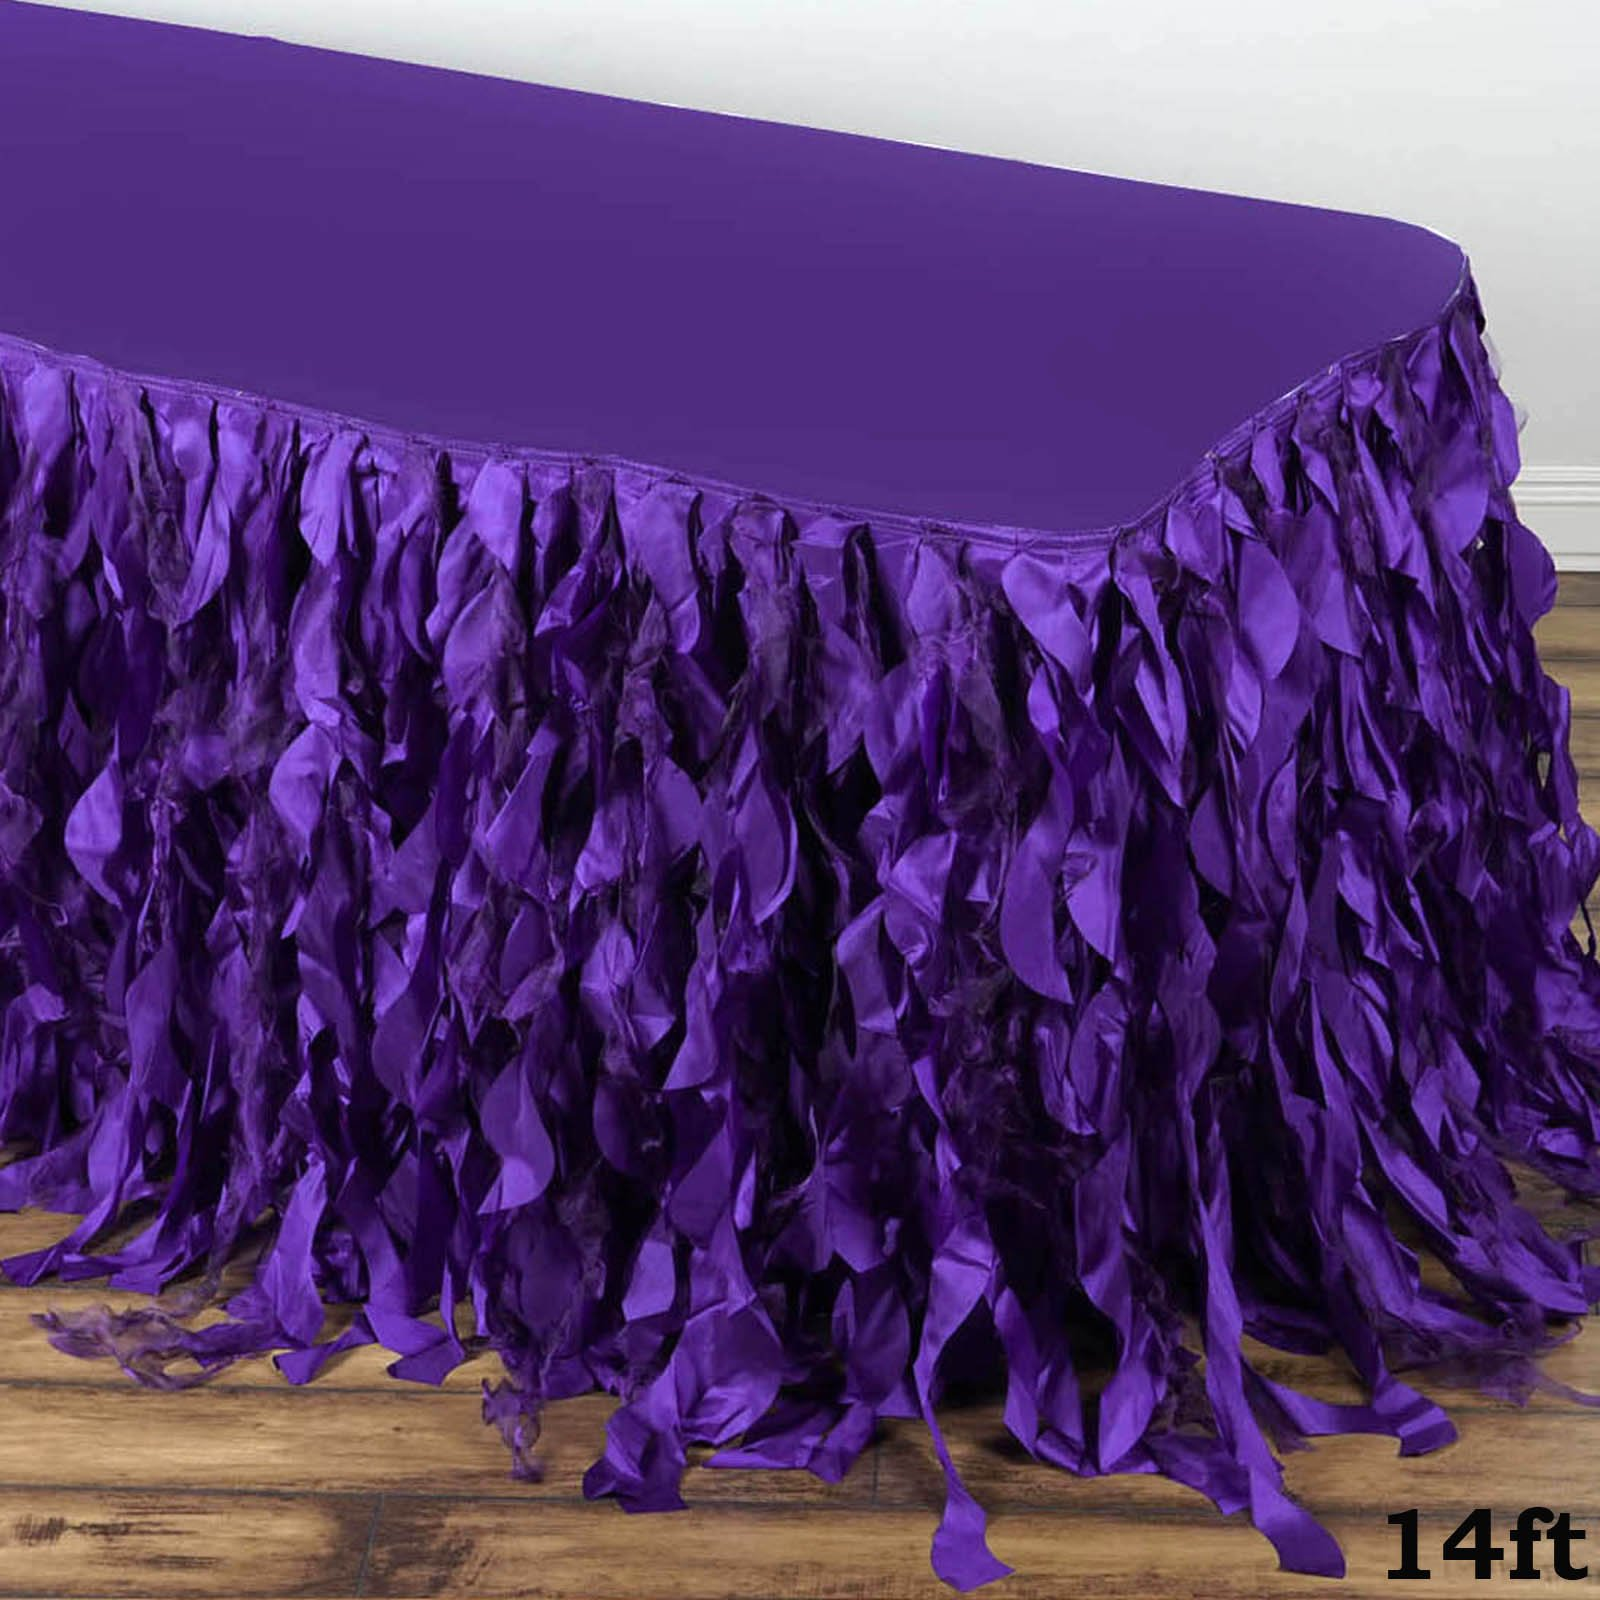 Tableclothsfactory 14ft Enchanting Curly Willow Taffeta Table Skirt for Kitchen Dining Catering Wedding Birthday Party Events - Purple